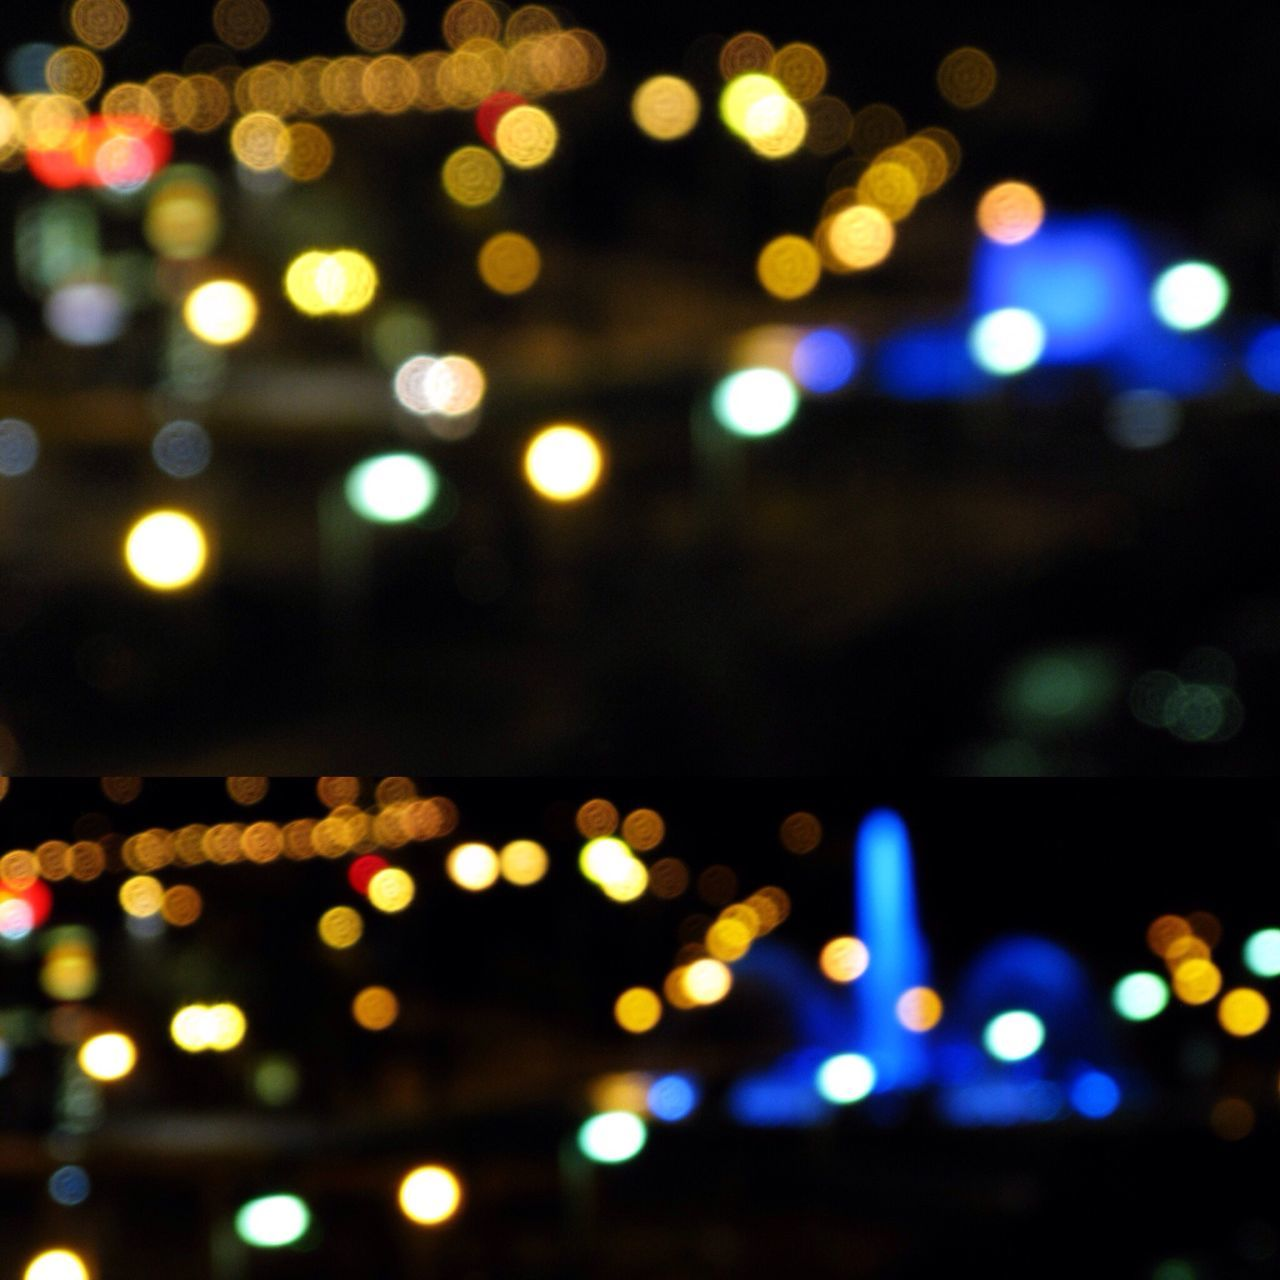 illuminated, night, defocused, lighting equipment, glowing, fairy lights, light effect, christmas lights, no people, light bulb, focus on foreground, vehicle light, multi colored, electricity, outdoors, christmas decoration, close-up